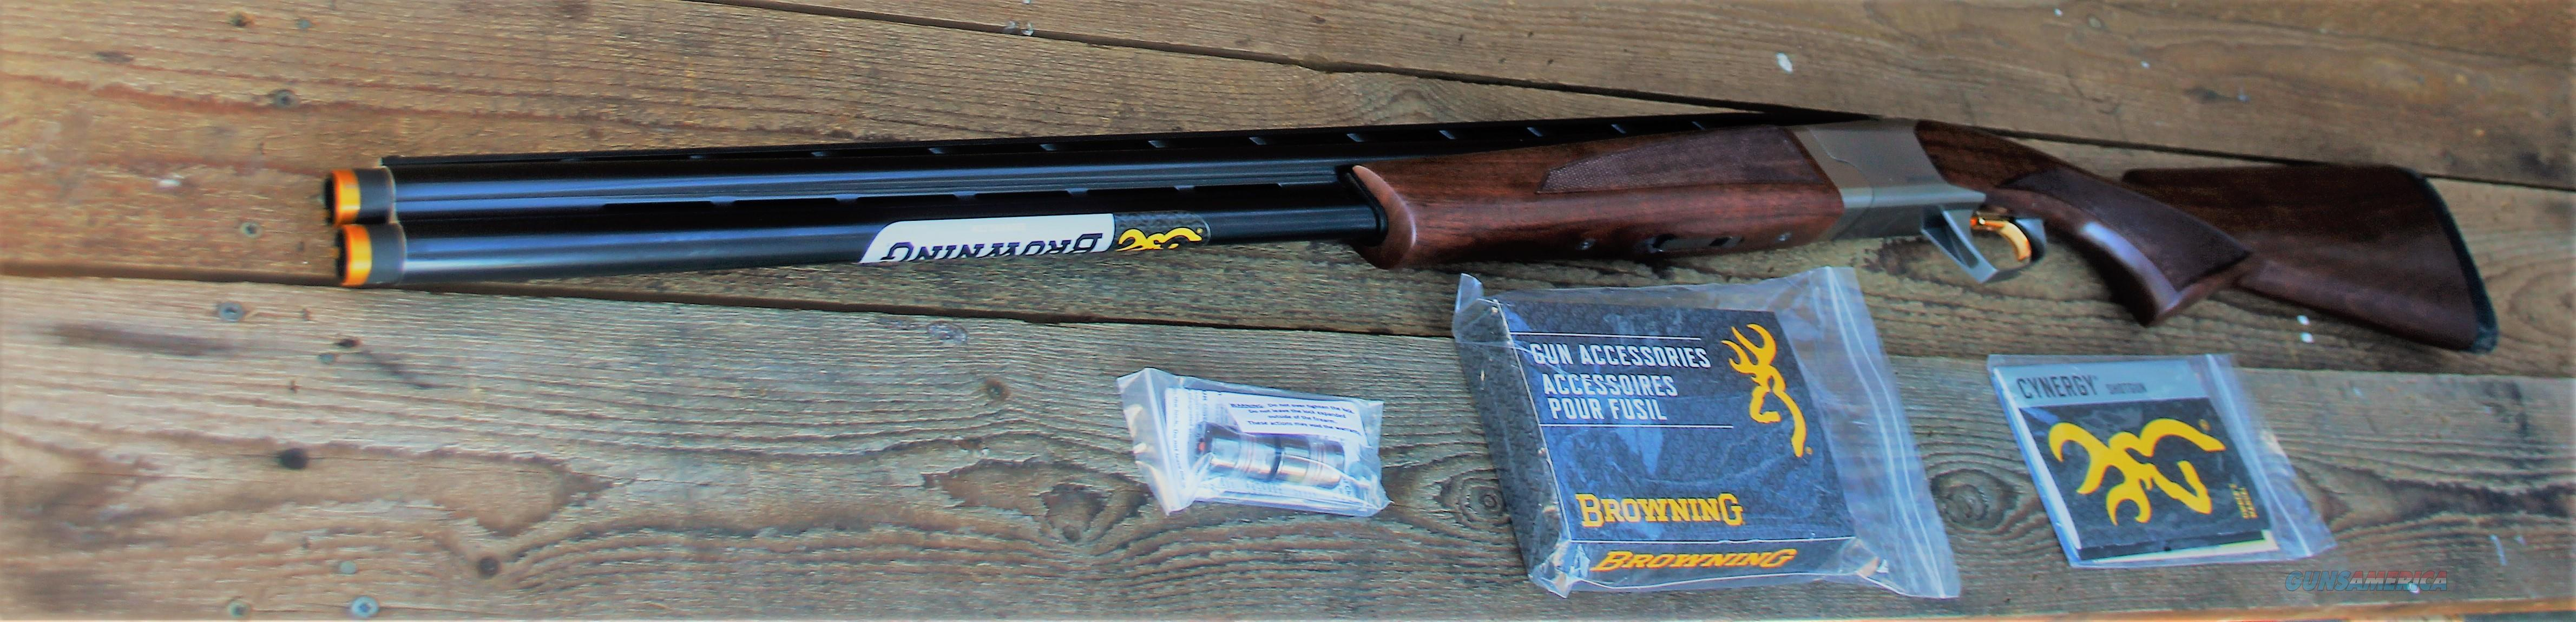 "$92 EASY PAY Browning over/under sporting clays Bird Gun 12 gauge Trap Skeet Cynergy 12 ga Pheasant hunting 30"" barrels Break action CX silver nitride steel receiver Grade I black walnut stock INFLEX  RECOIL PAD BG Nib  018709303"